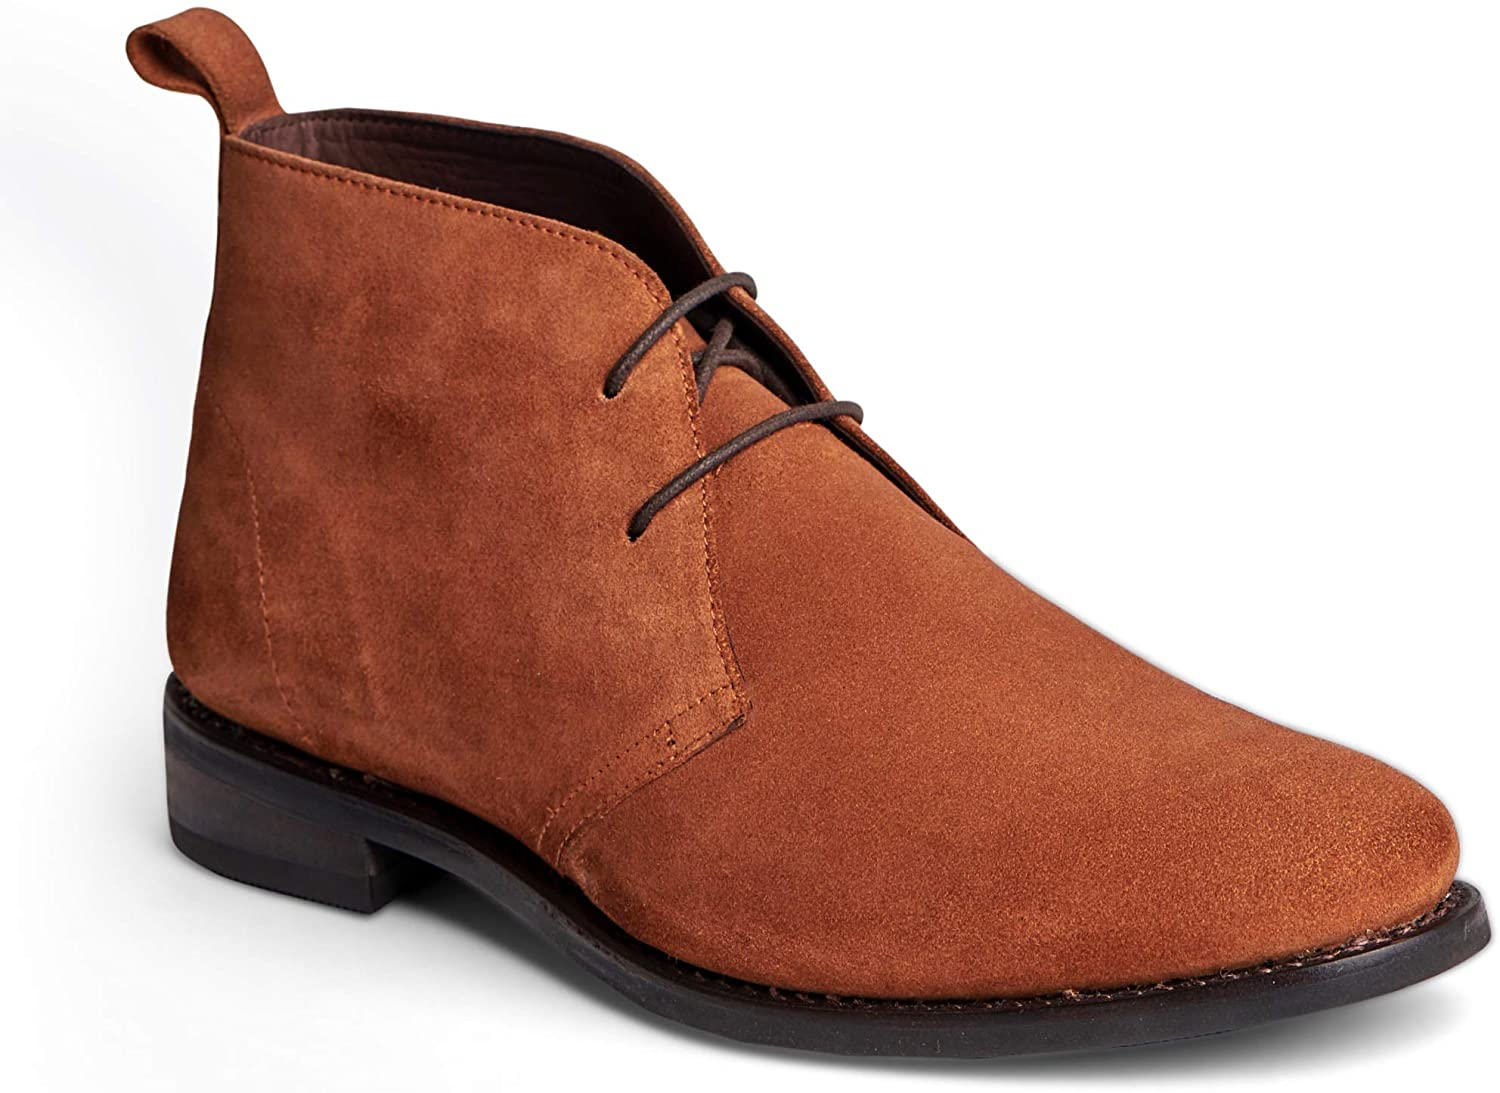 Anthony Veer Men's Arthur Leather Suede Chukka Desert Boot Casual Comfort Ankle Goodyear Welted